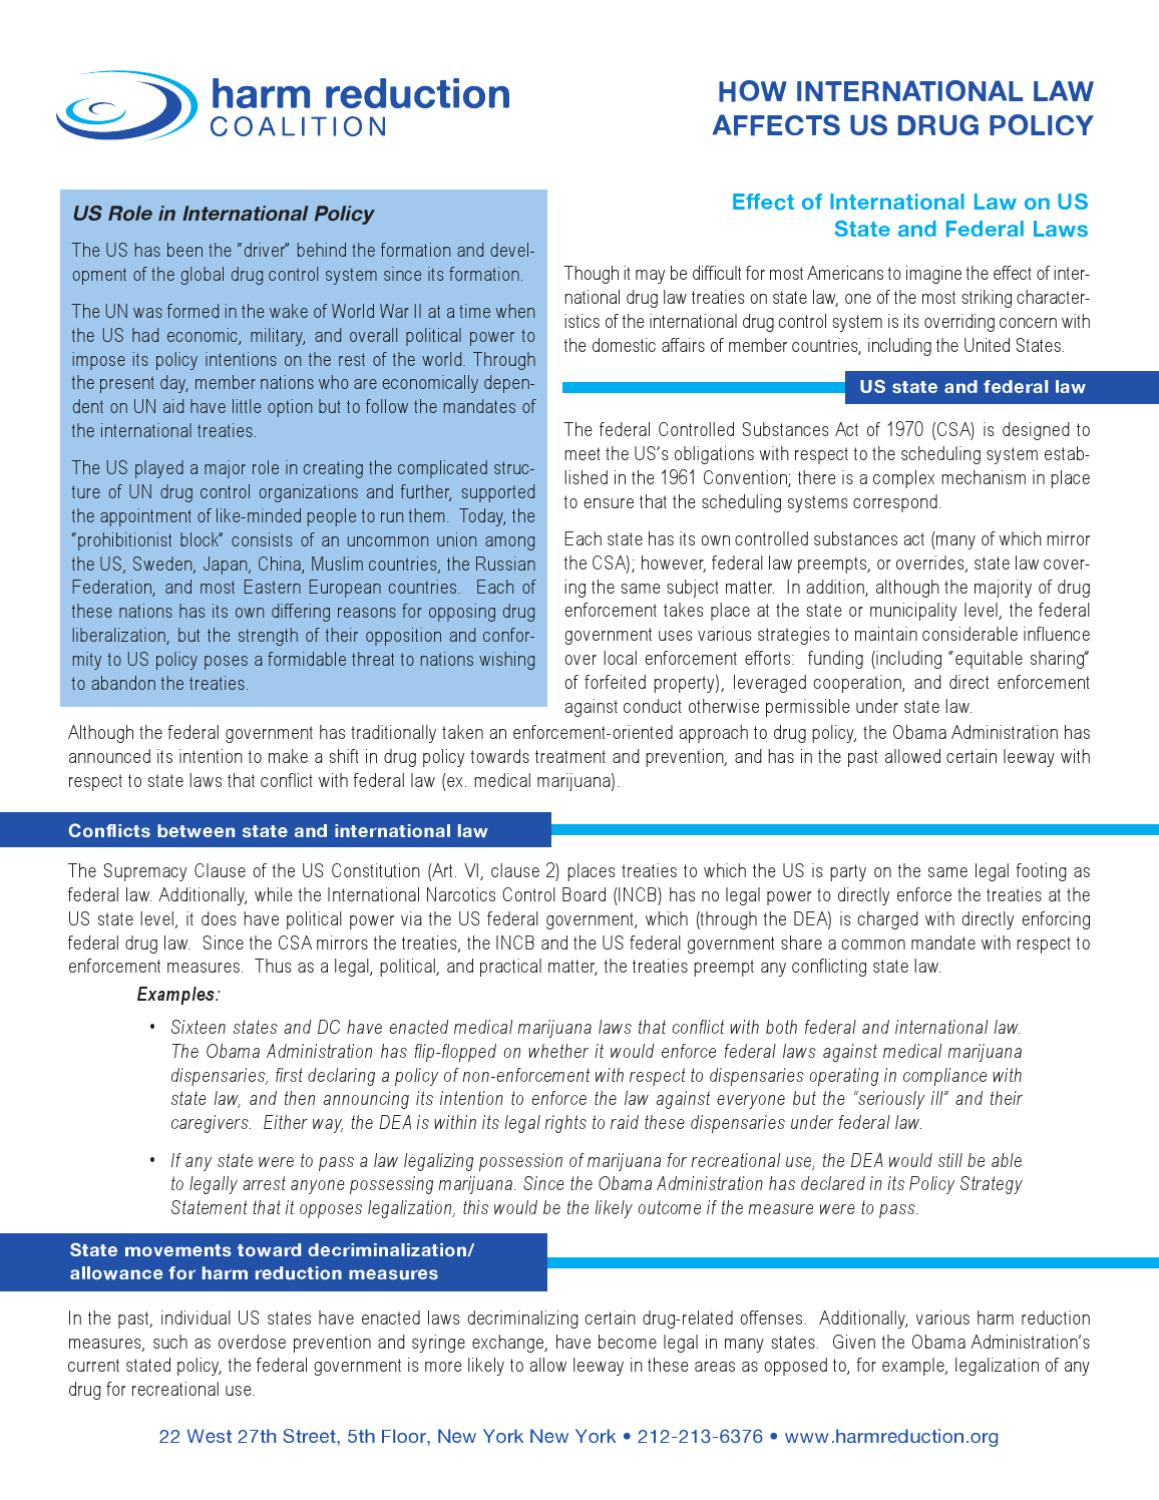 Effect of International Law on US State and Federal Laws by